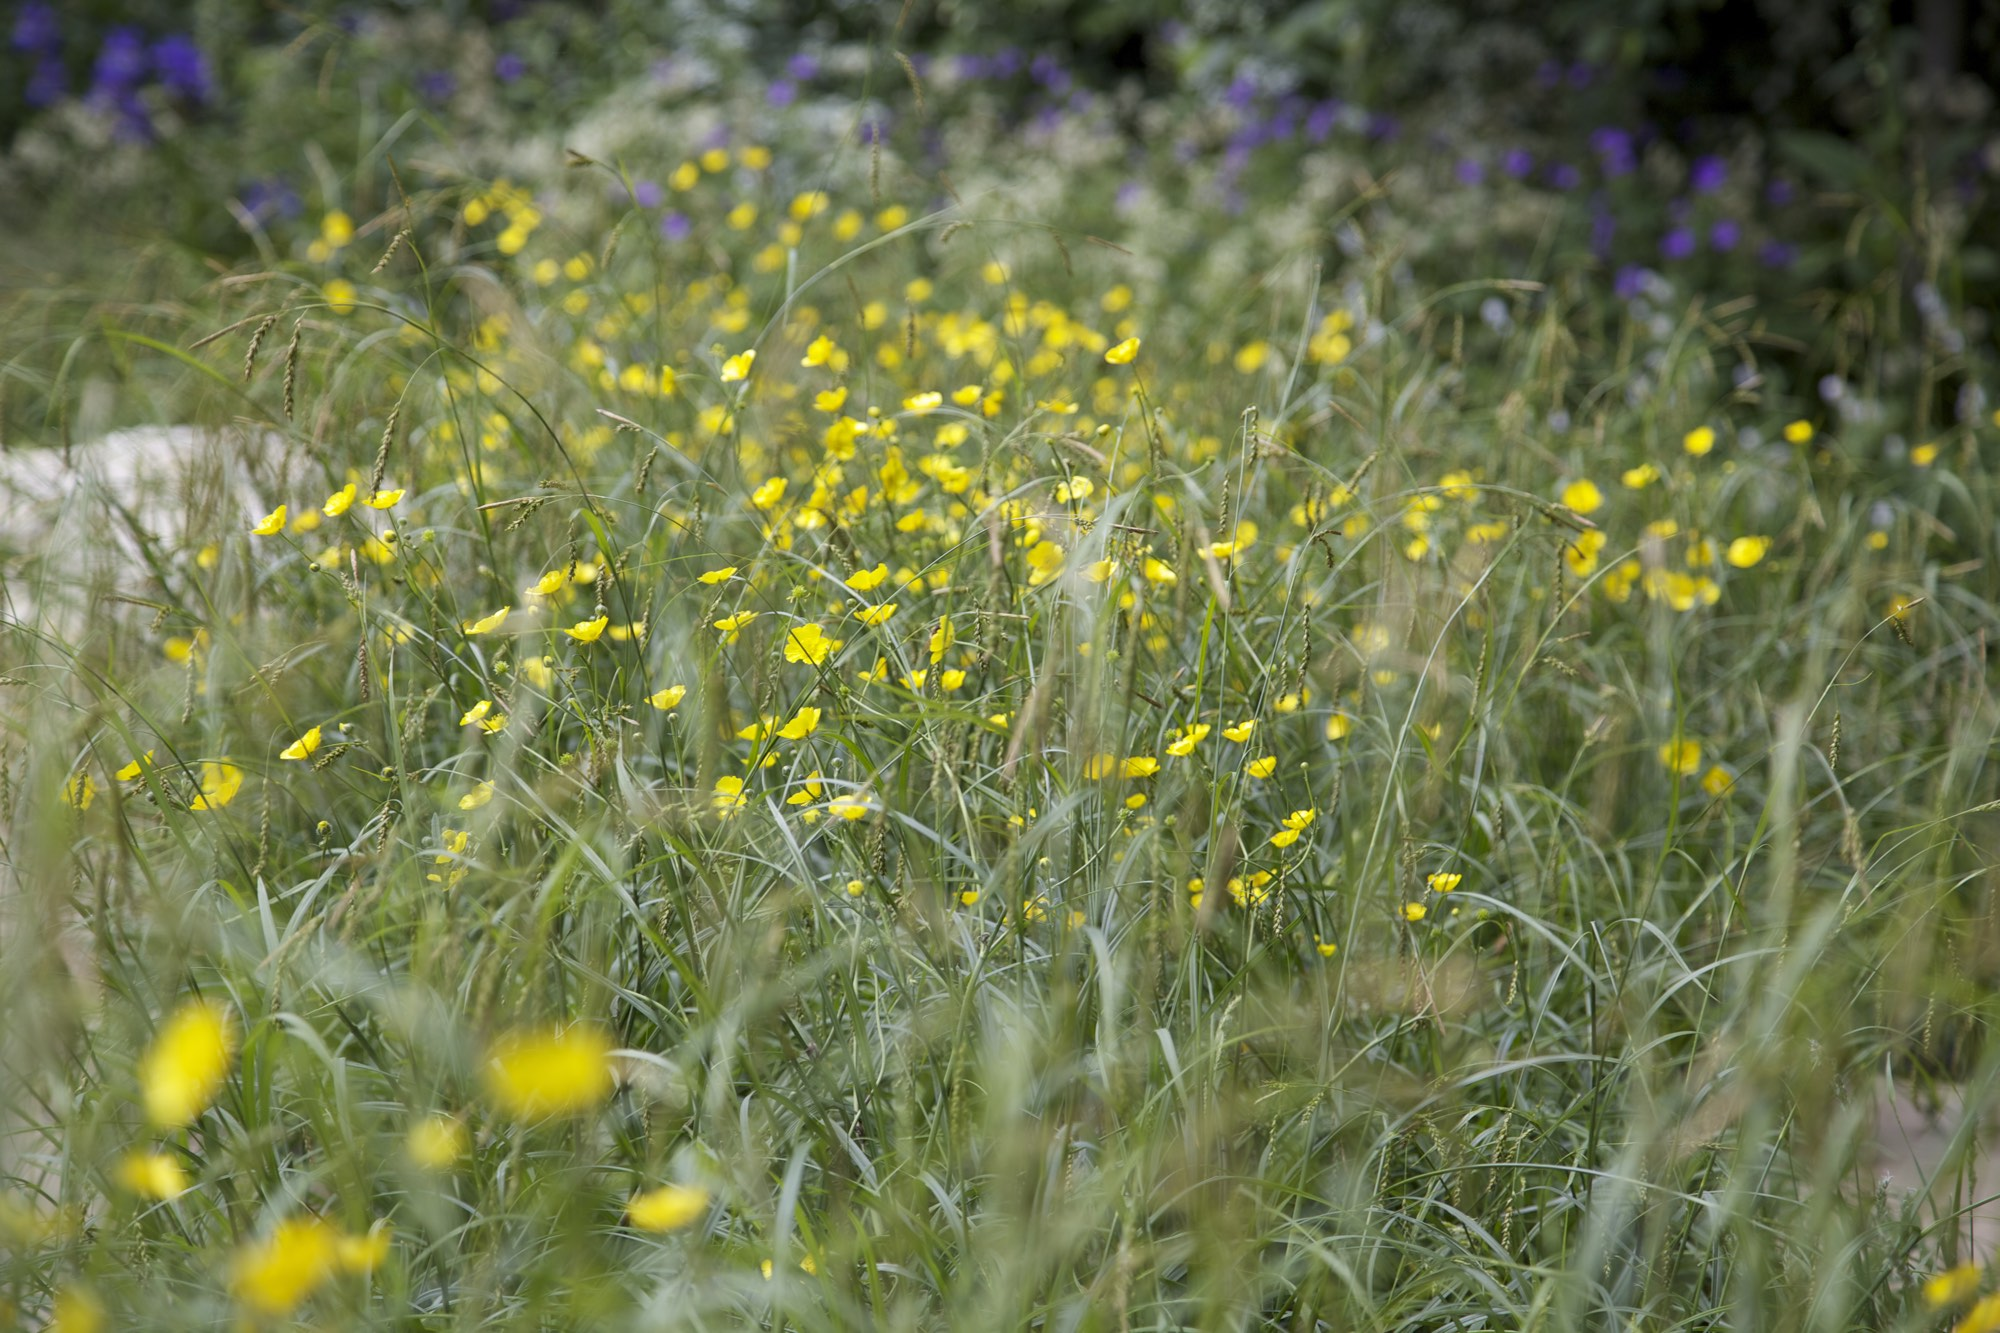 Informal planting of grass and buttercups at Adam's Chelsea 2014 garden